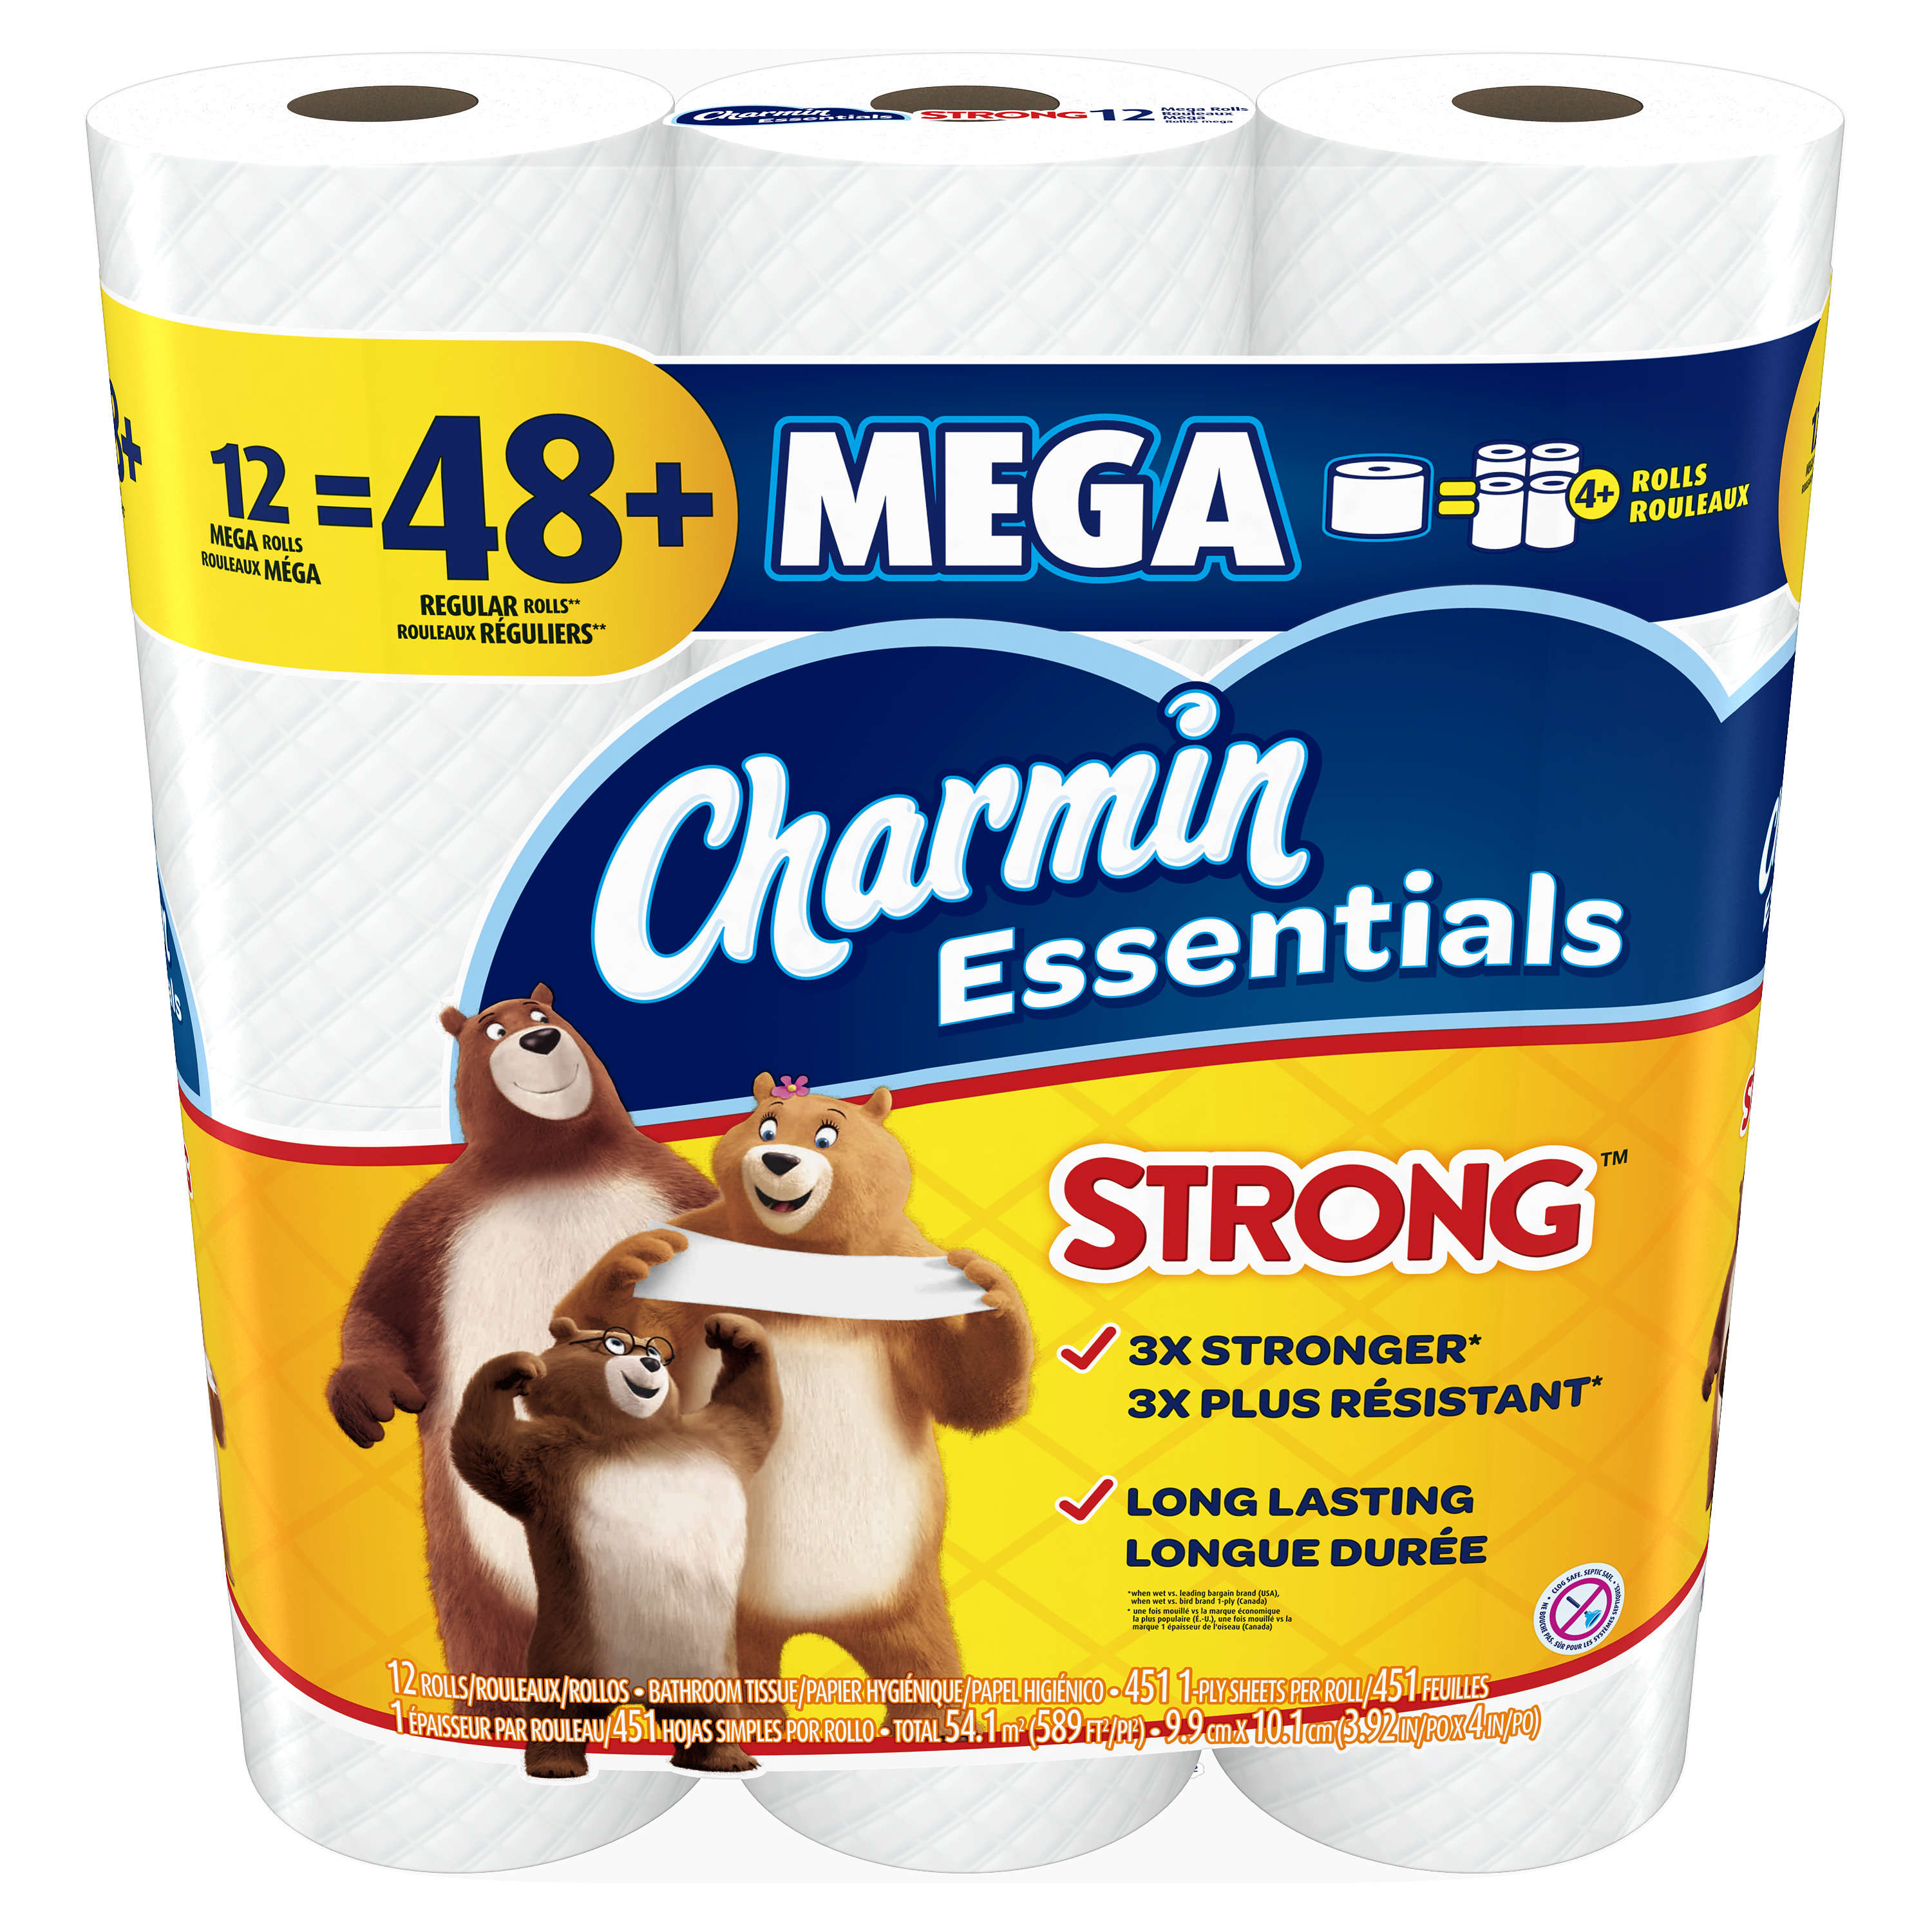 Charmin Essentials Strong Toilet Paper, 12 Mega Rolls